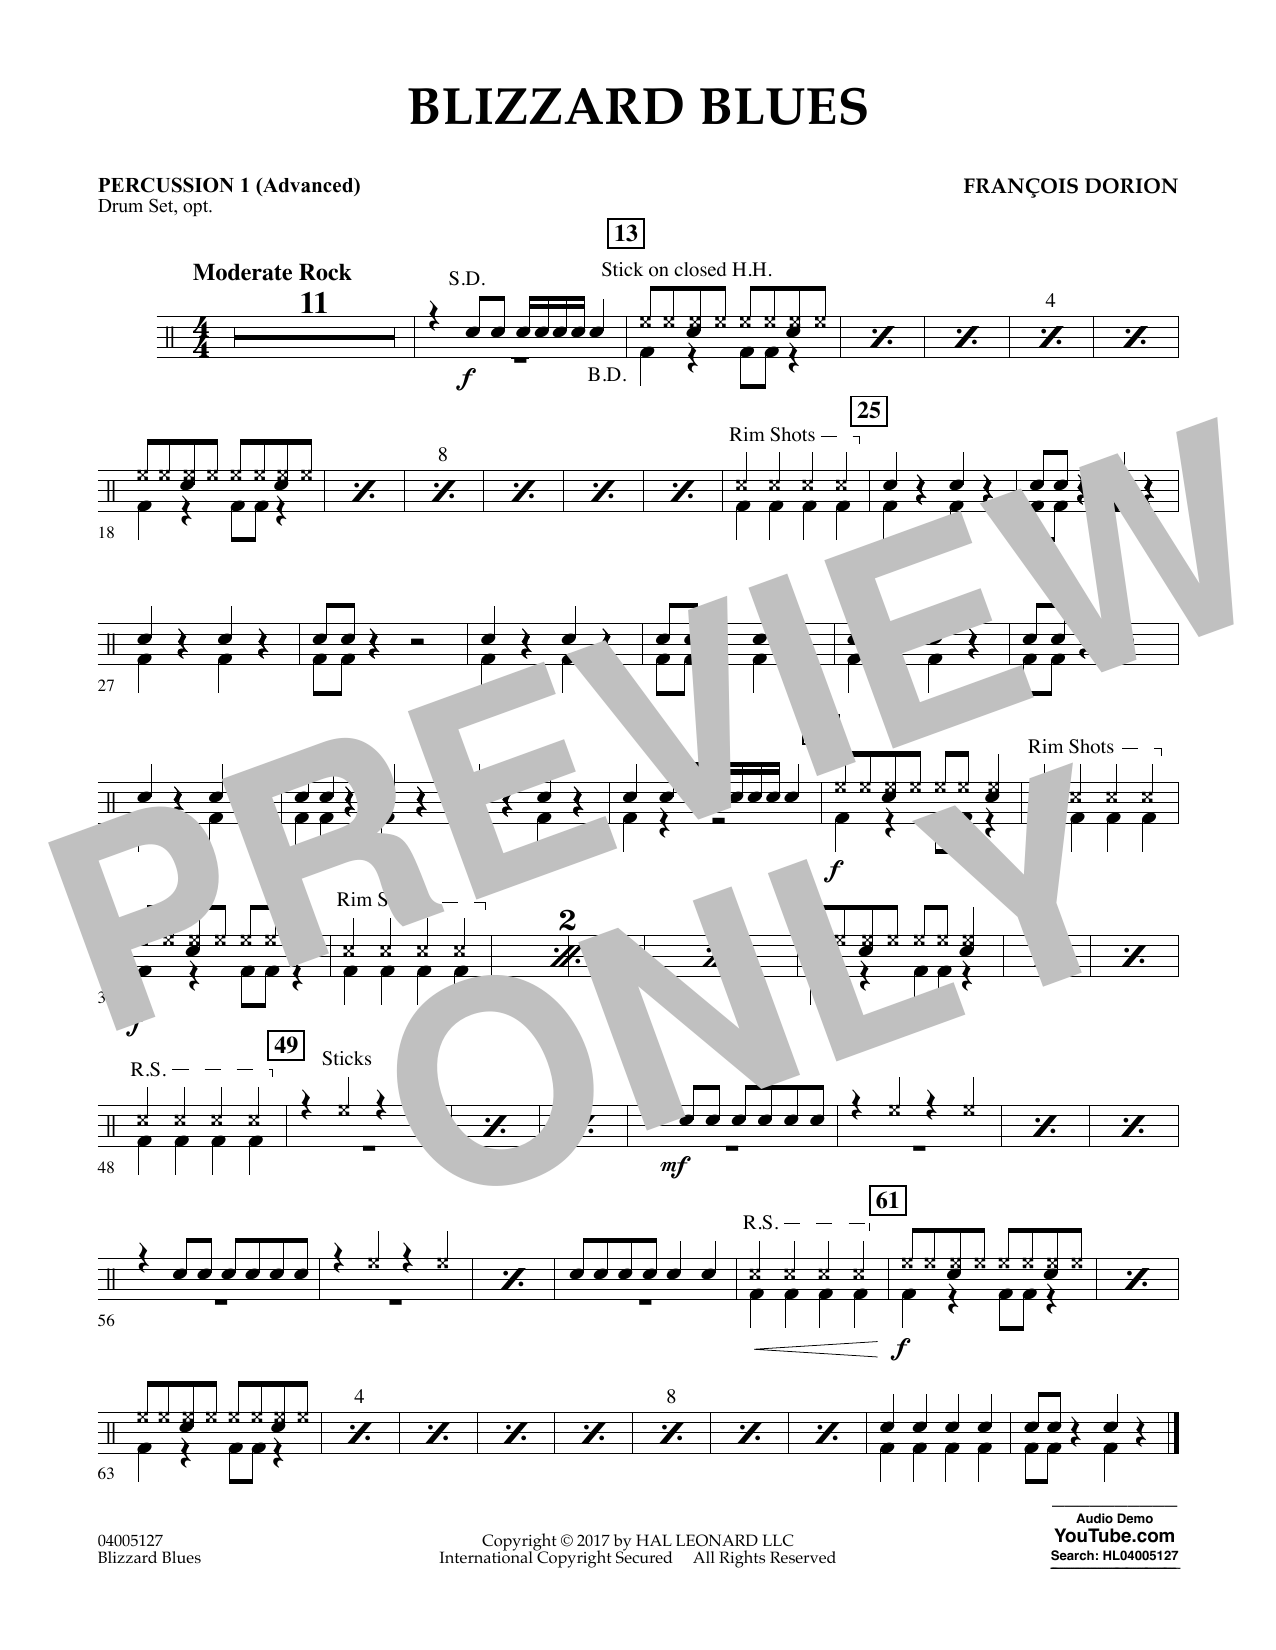 Francois Dorion Blizzard Blues - Percussion 1 (Advanced) sheet music notes and chords. Download Printable PDF.